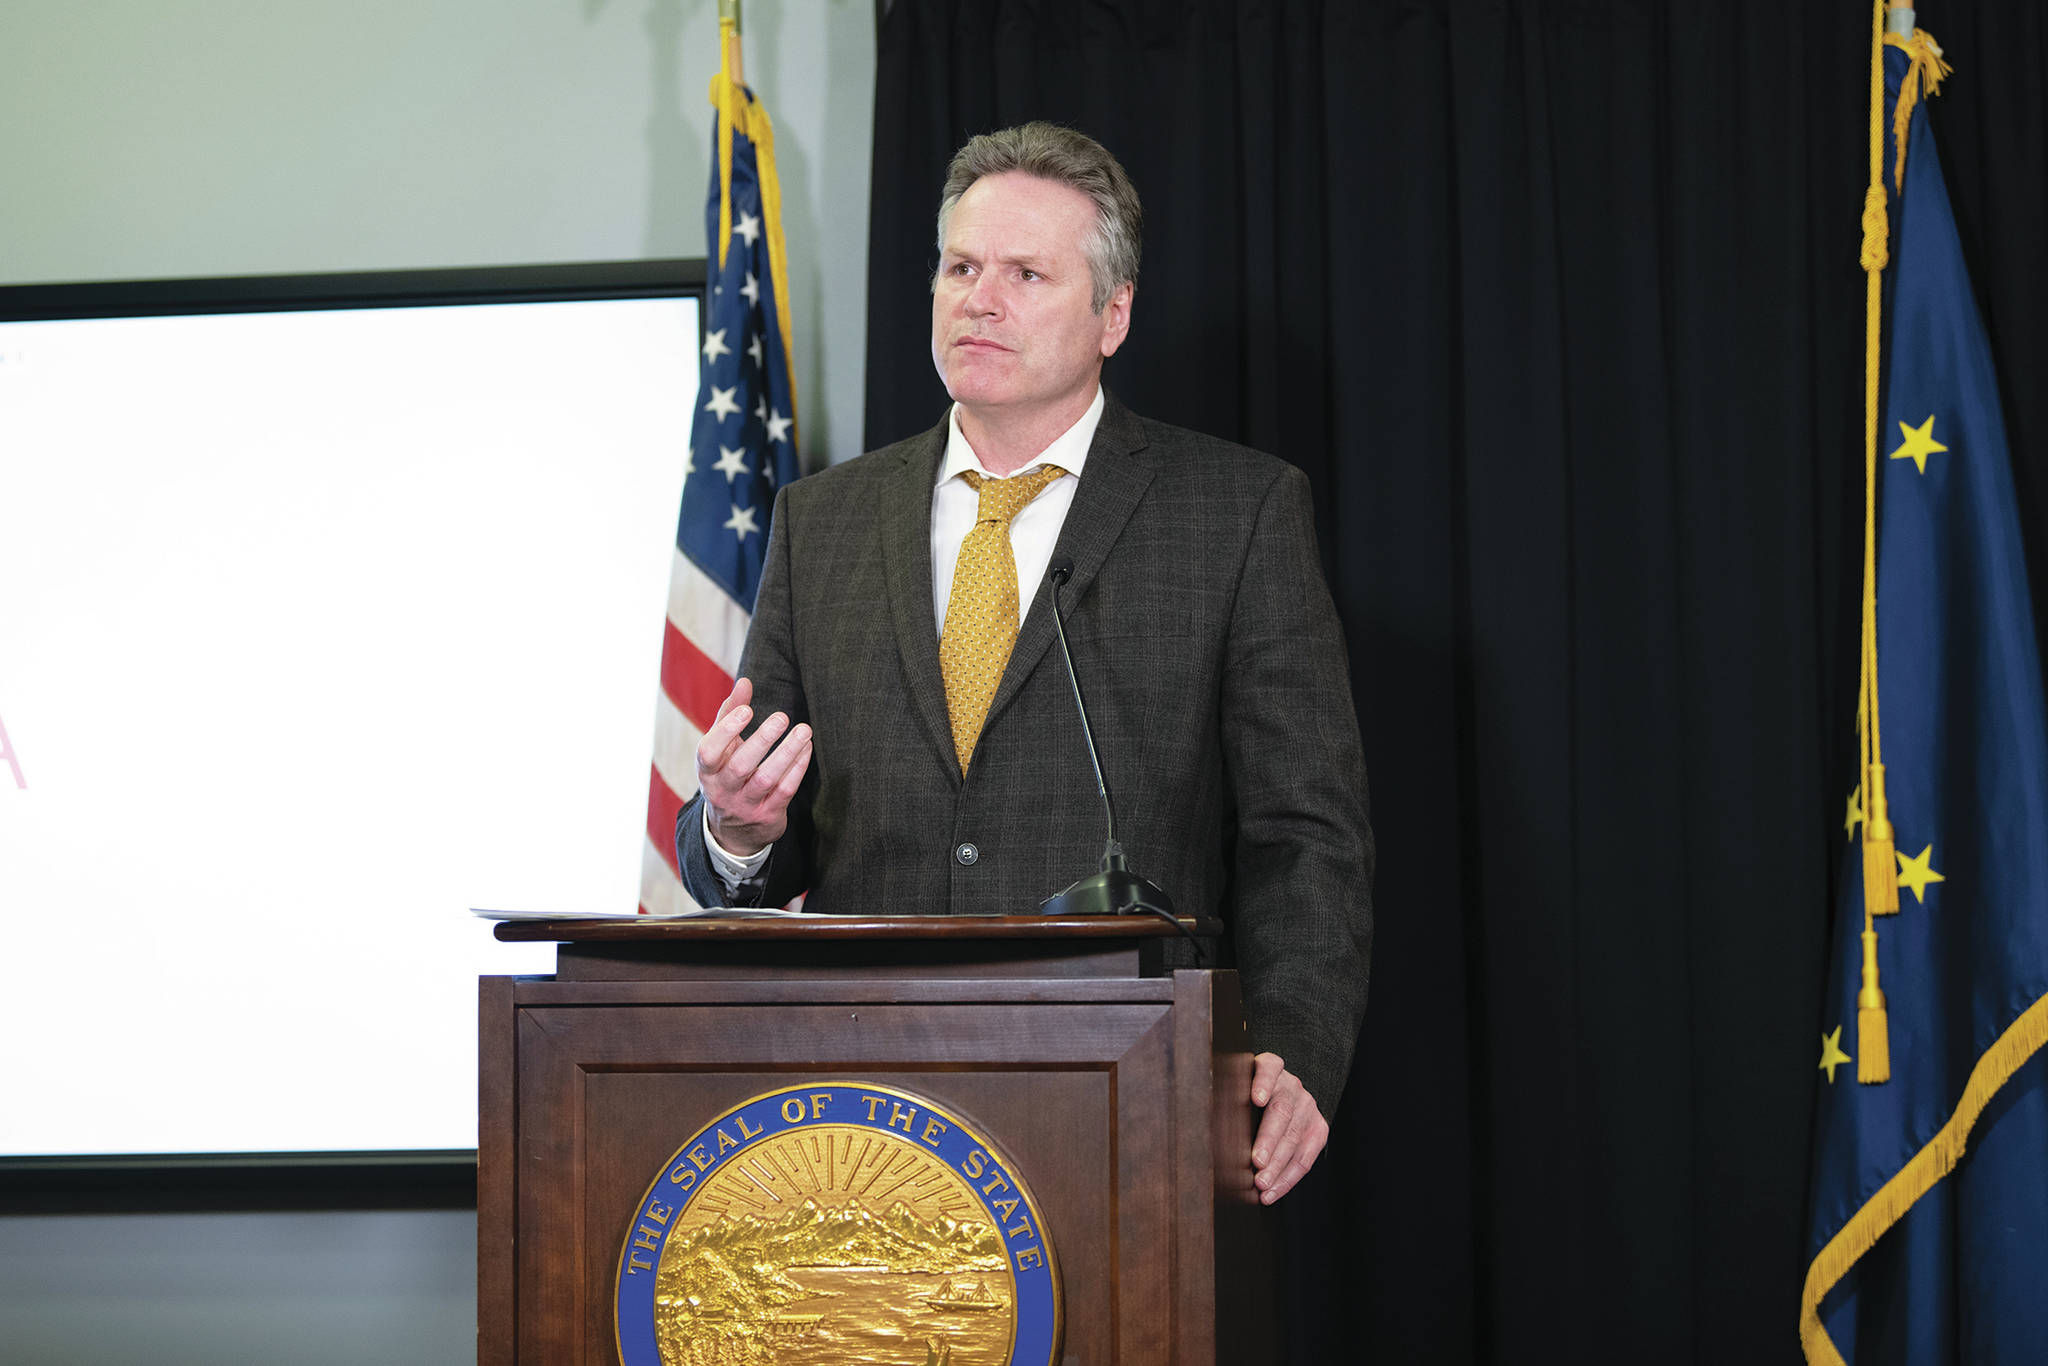 Gov. Mike Dunleavy speaks during a Tuesday, April 7, 2020 press conference in the Atwood Building in Anchorage, Alaska. (Photo courtesy Office of the Governor)